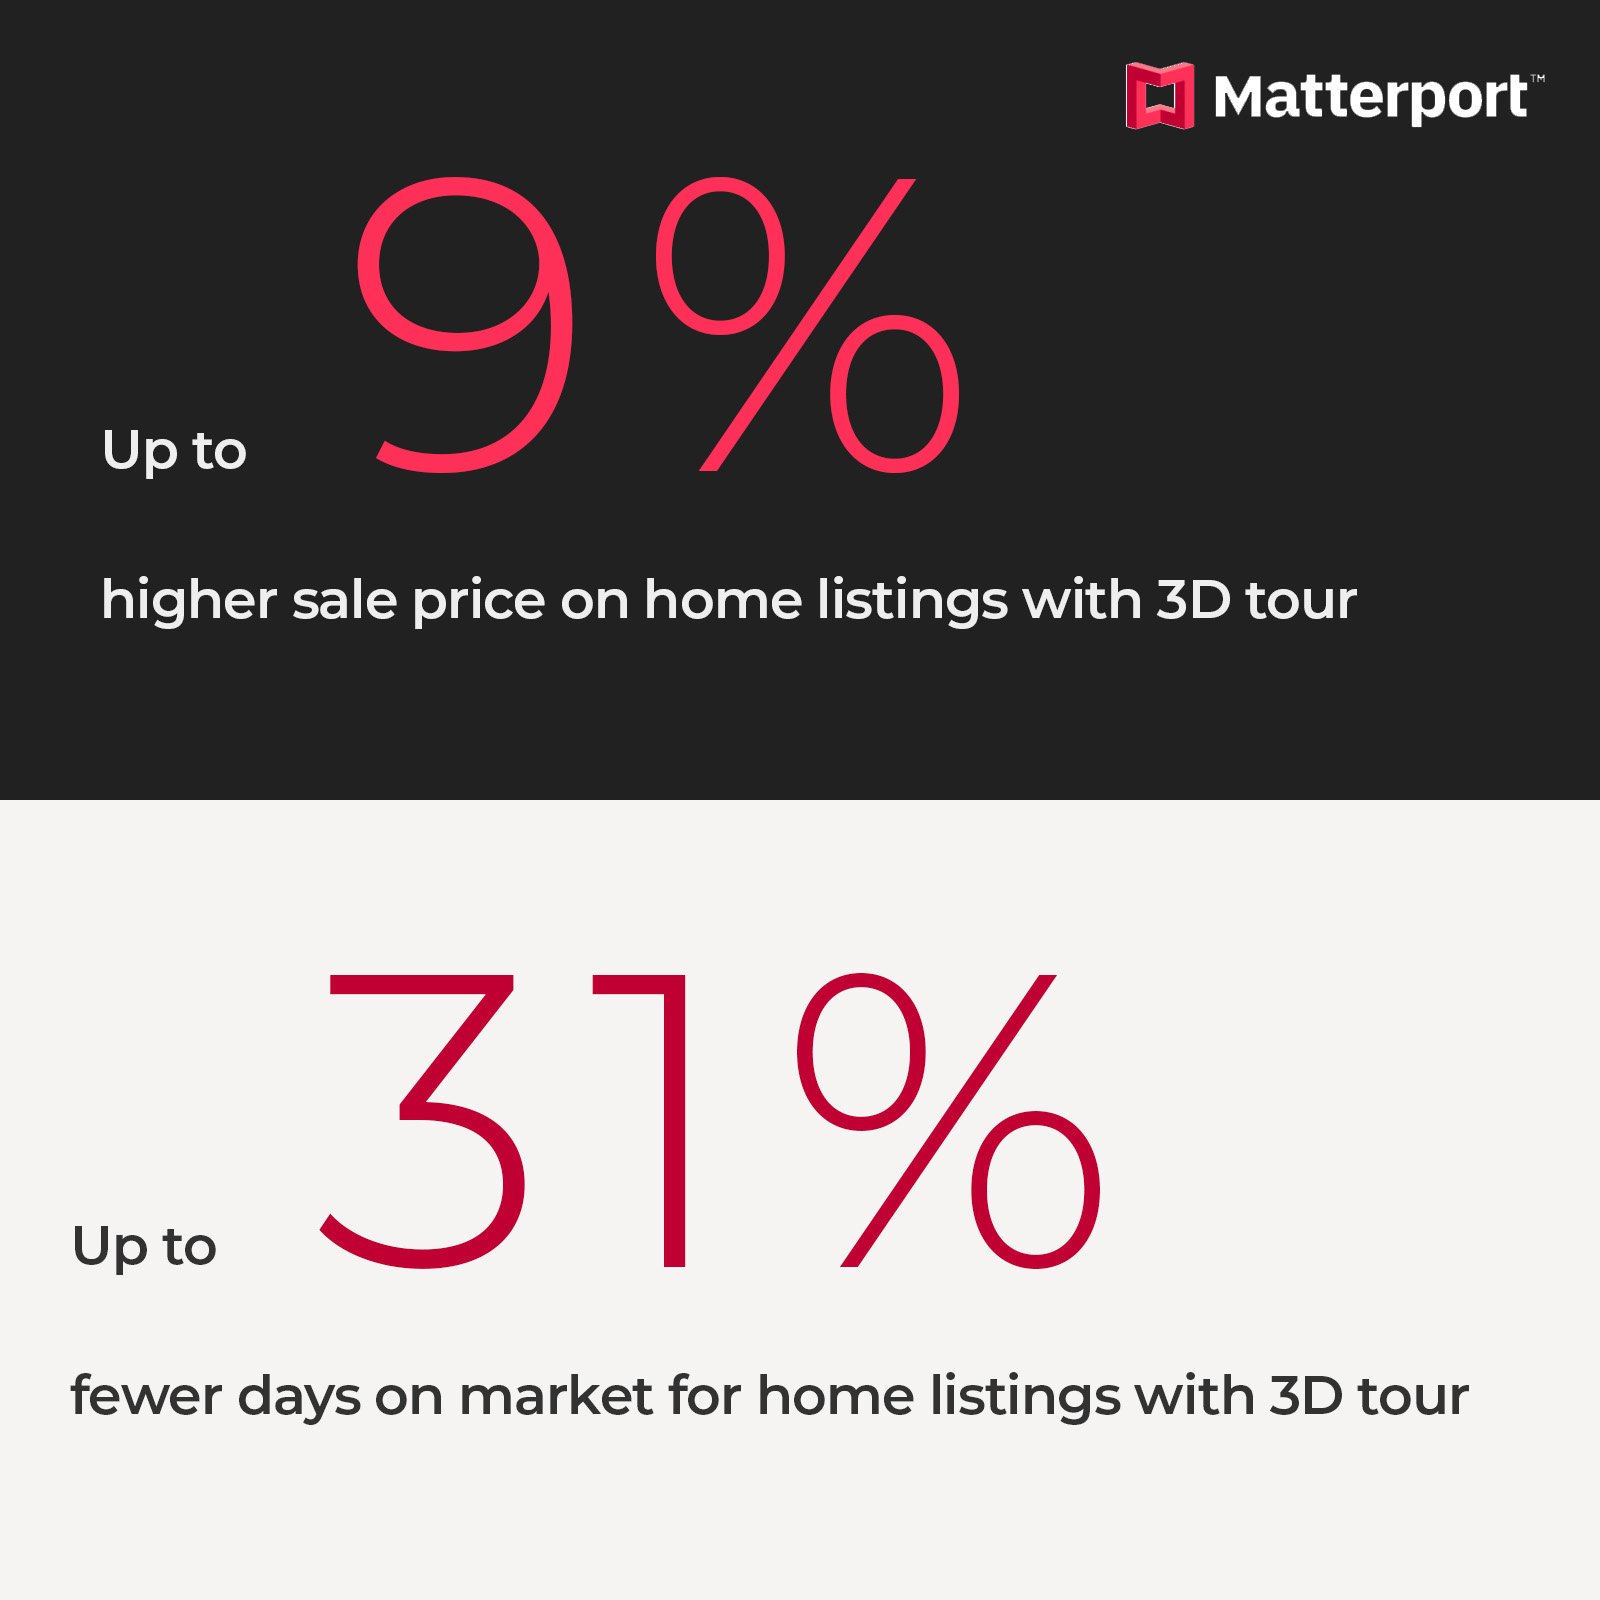 Matterport 3D virtual Tour sell for a higher price and can spend less time on market than homes listed using a traditional marketing package.